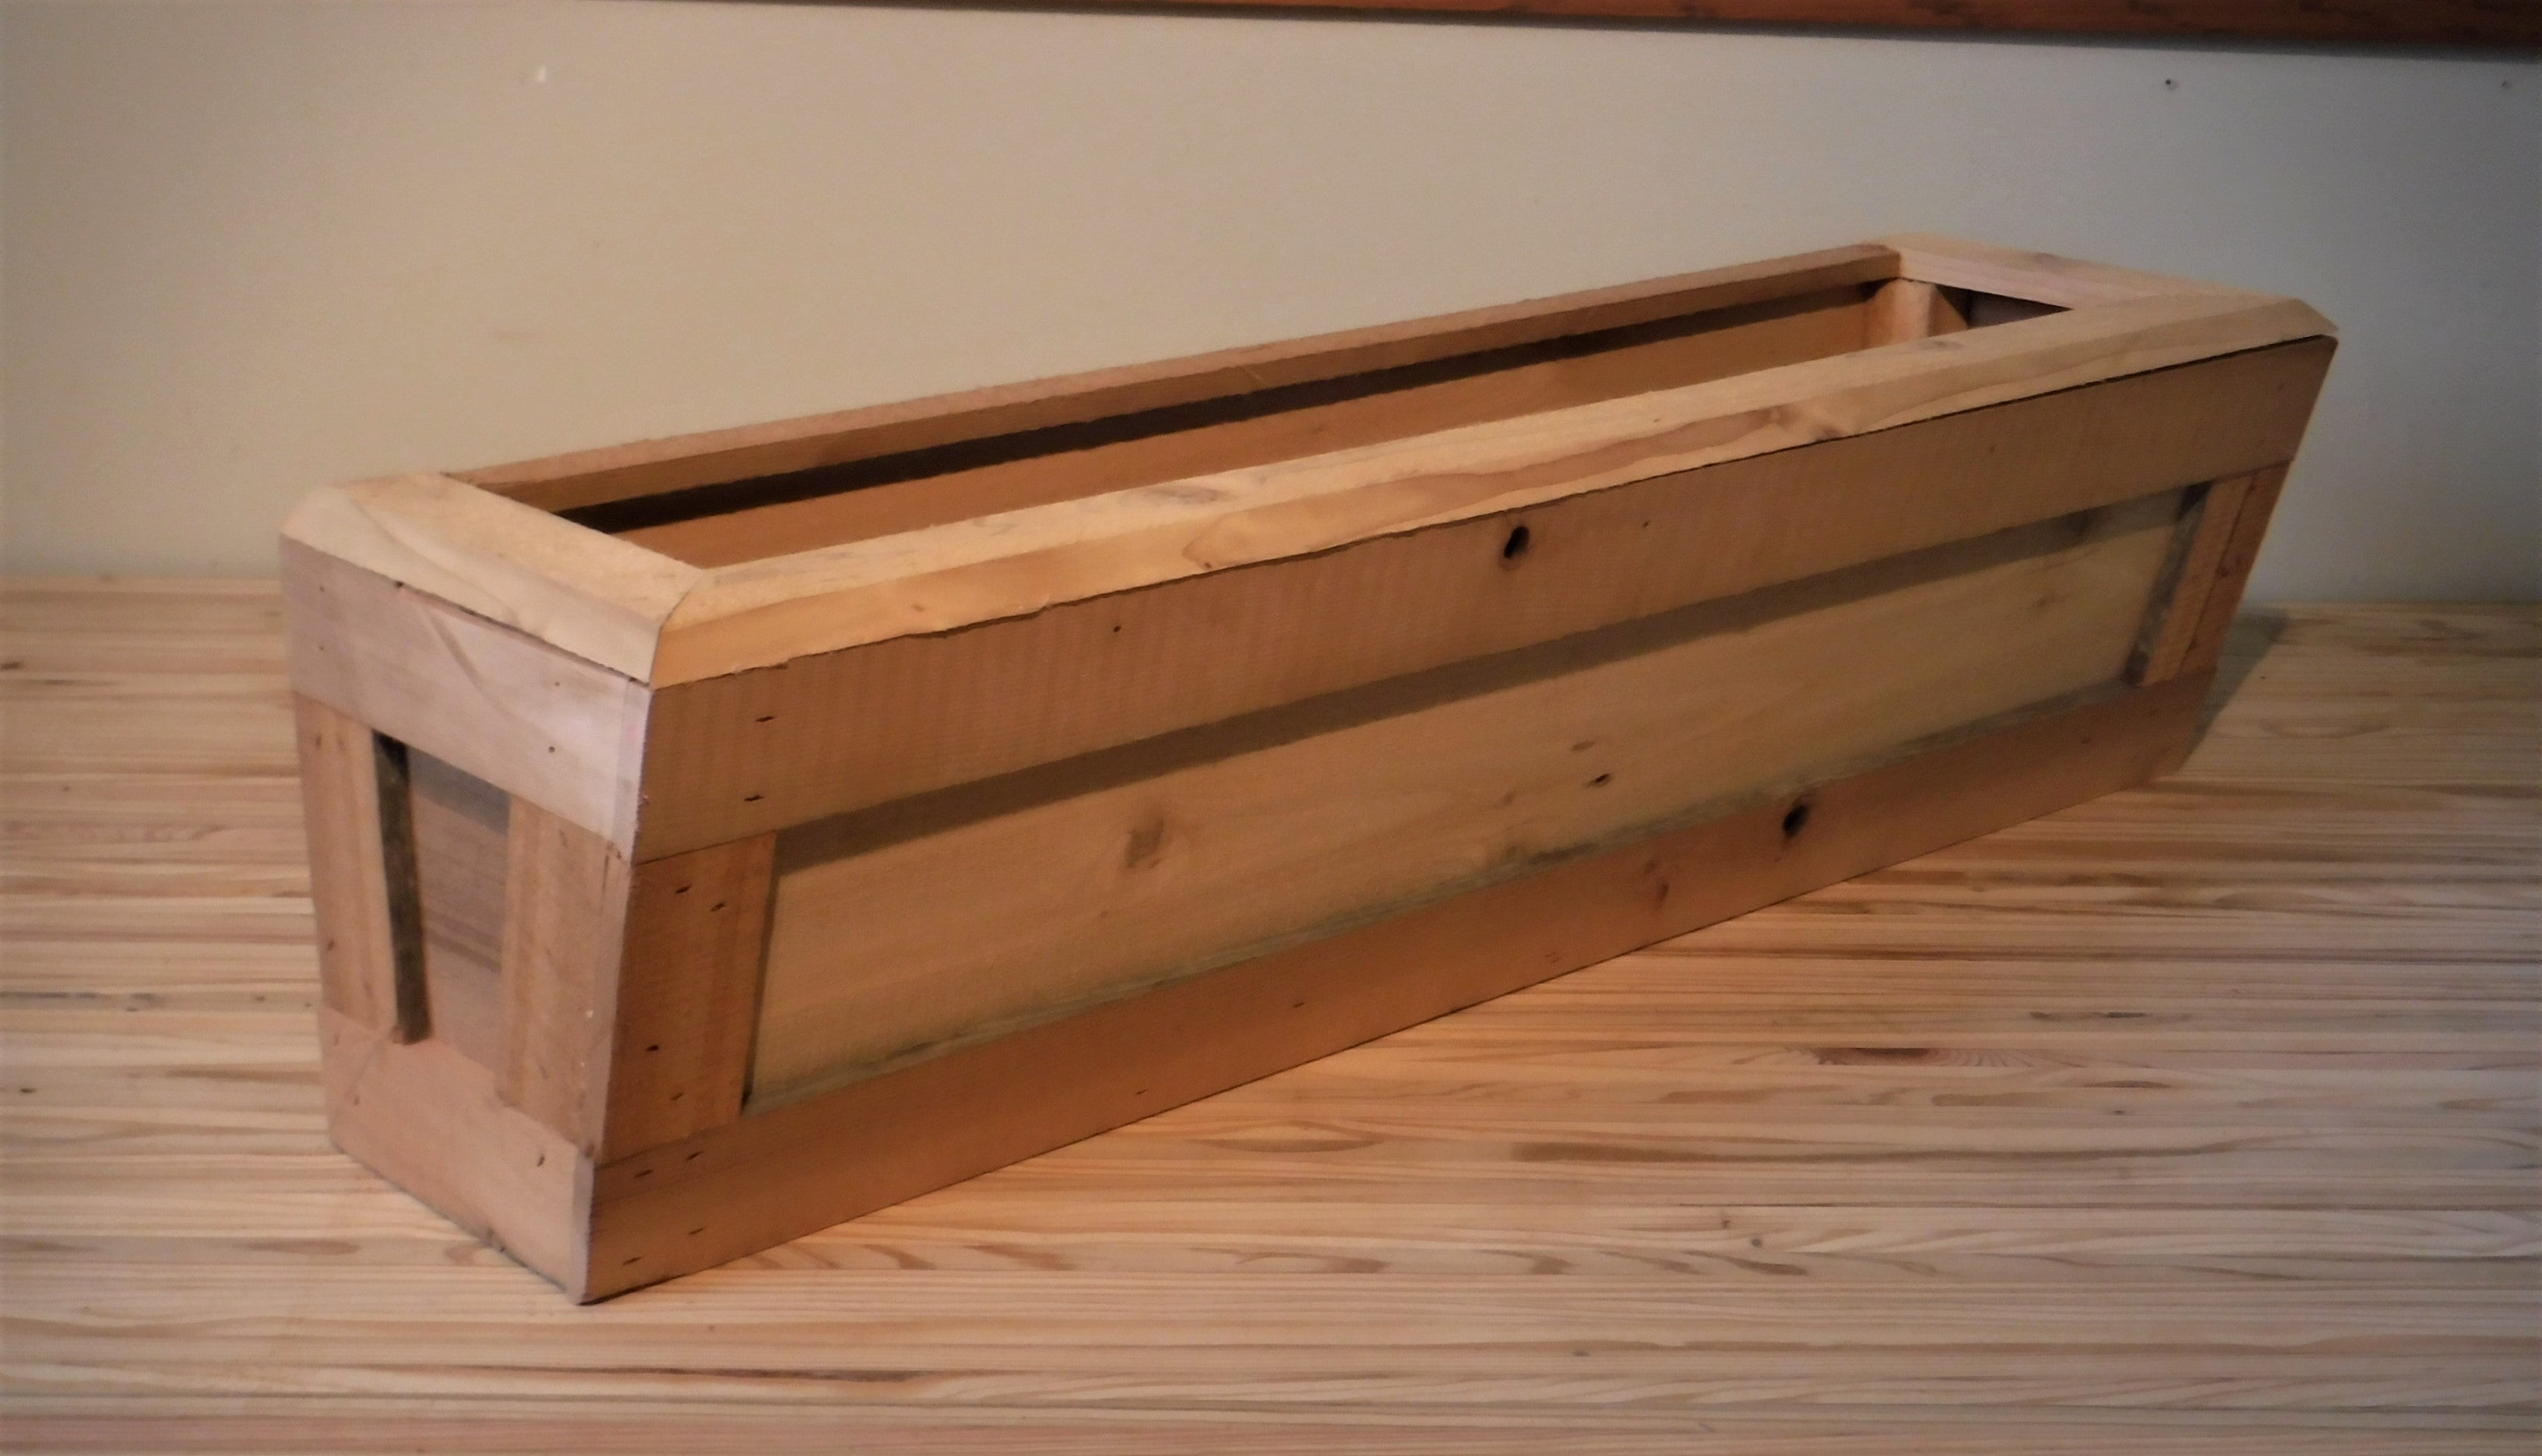 #3 Planter (window) box